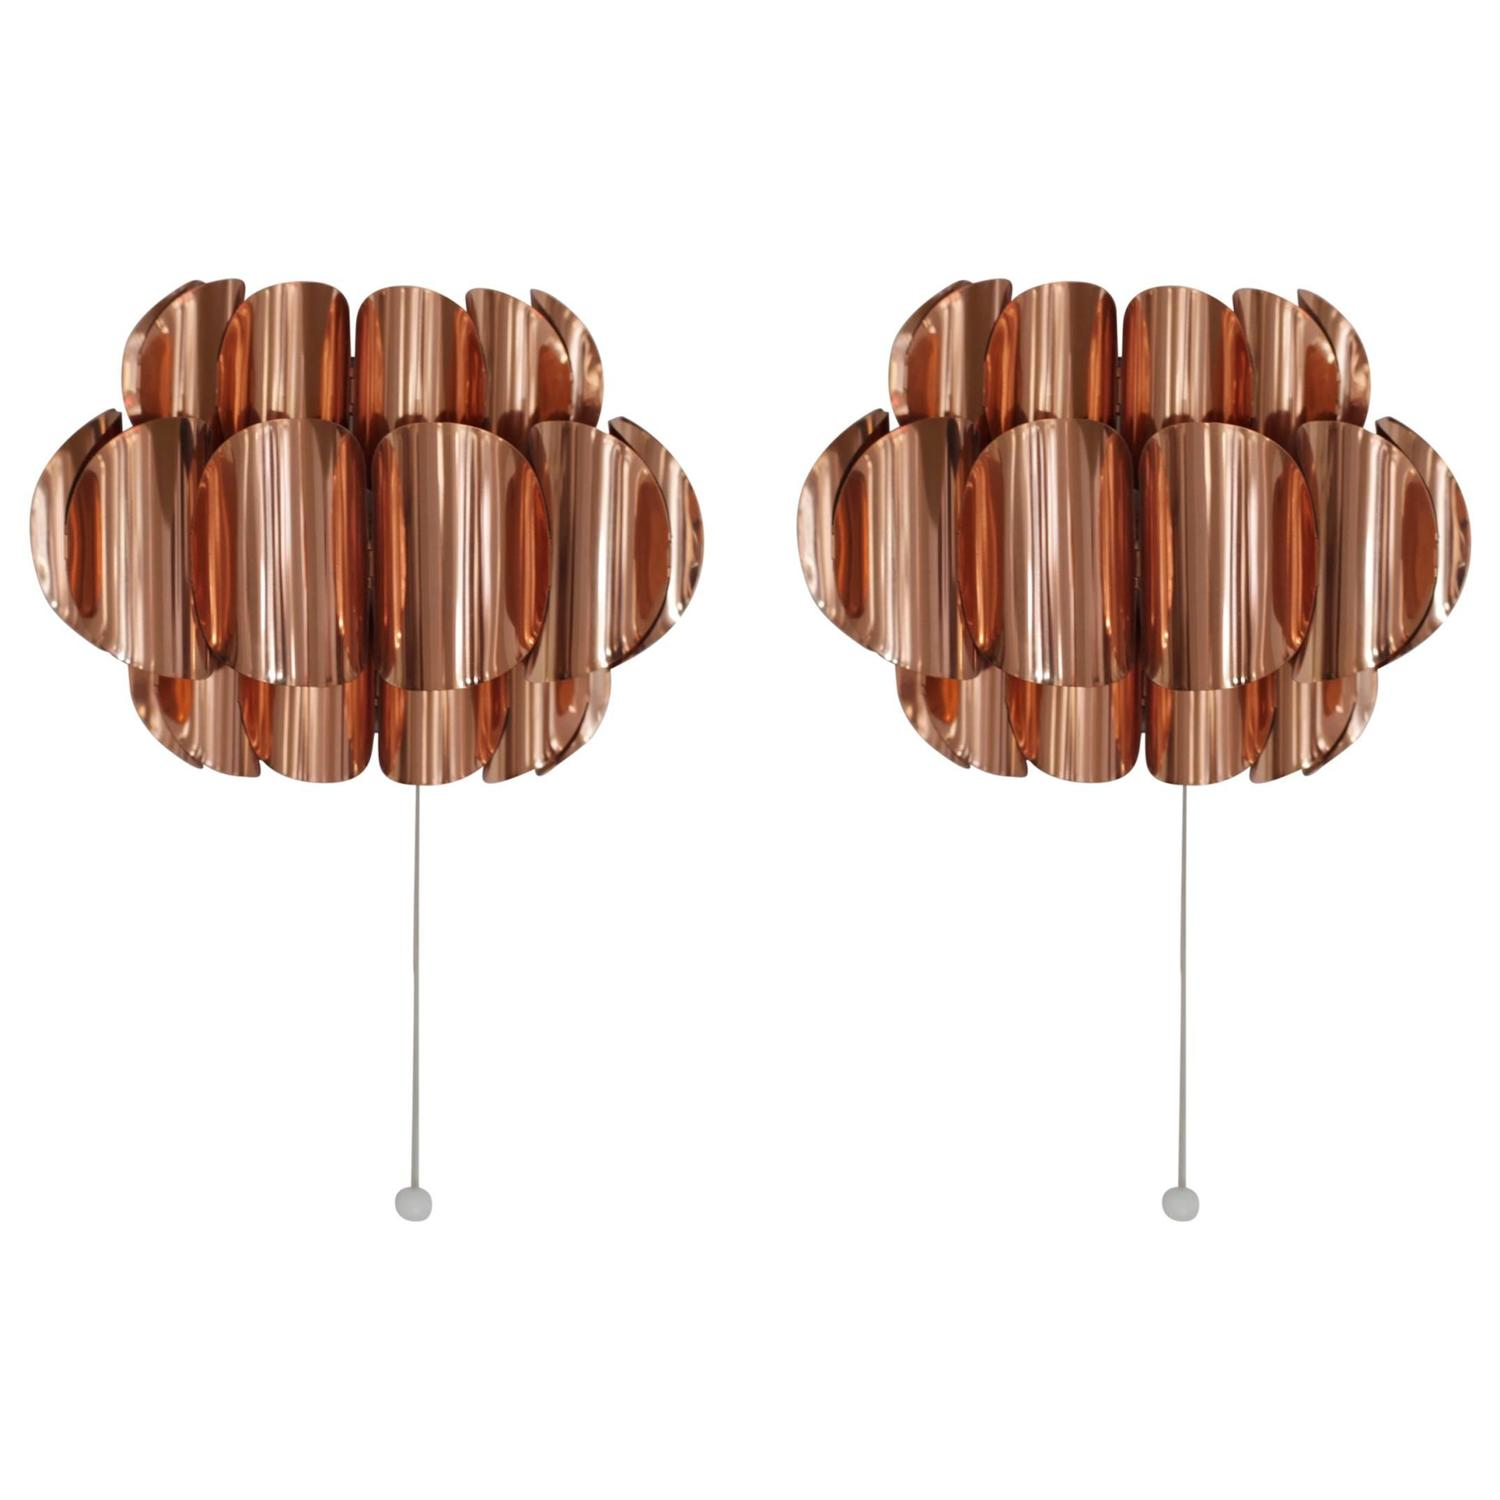 Copper Effect Wall Lights : Pair of Copper Sconces or Wall Lights by Hans Agne Jakobsson at 1stdibs